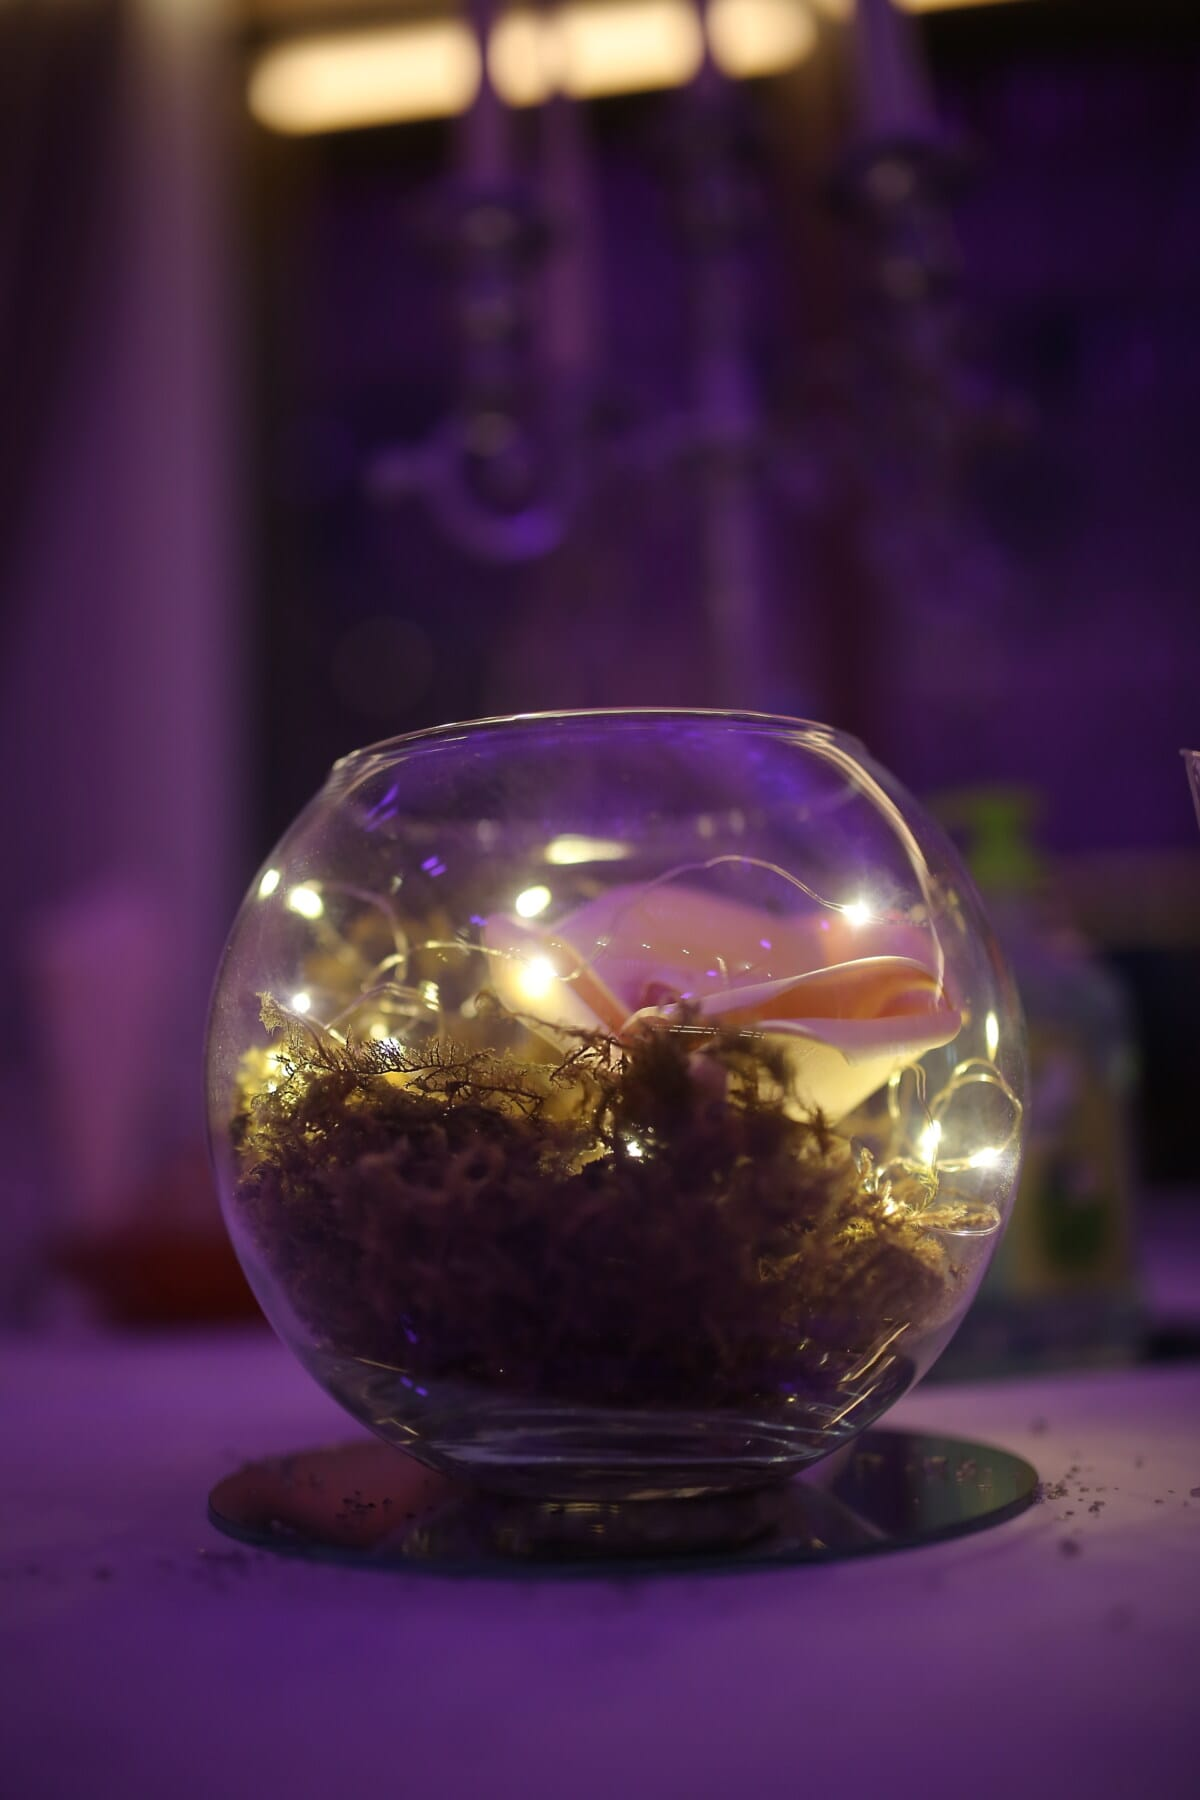 bowl, crystal, sphere, light, luxury, still life, glass, color, decoration, indoors